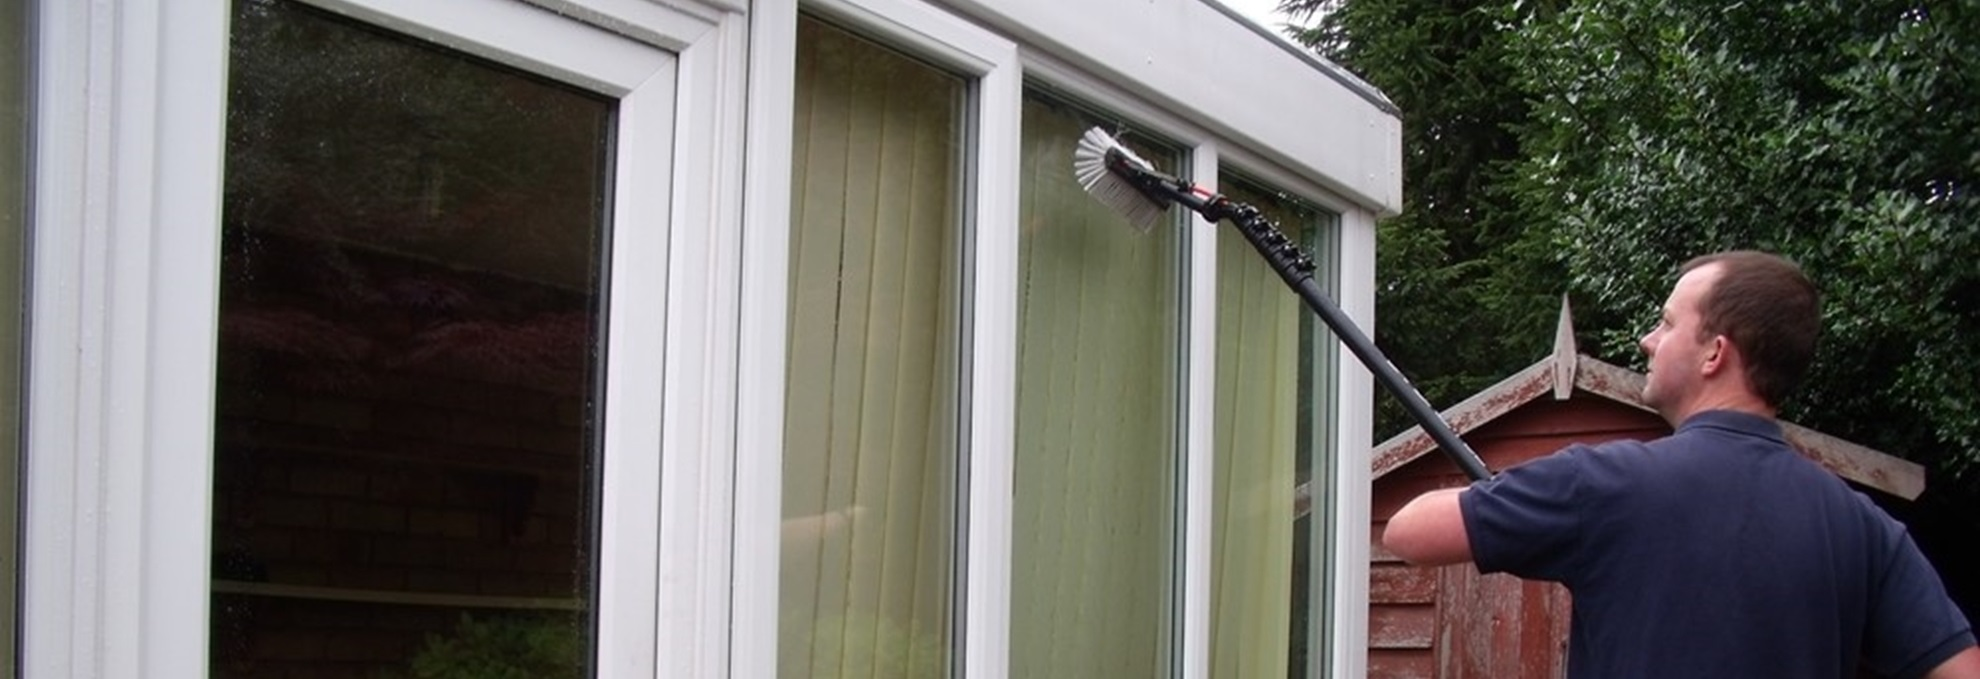 Window cleaning in Lichfield, Staffordshire